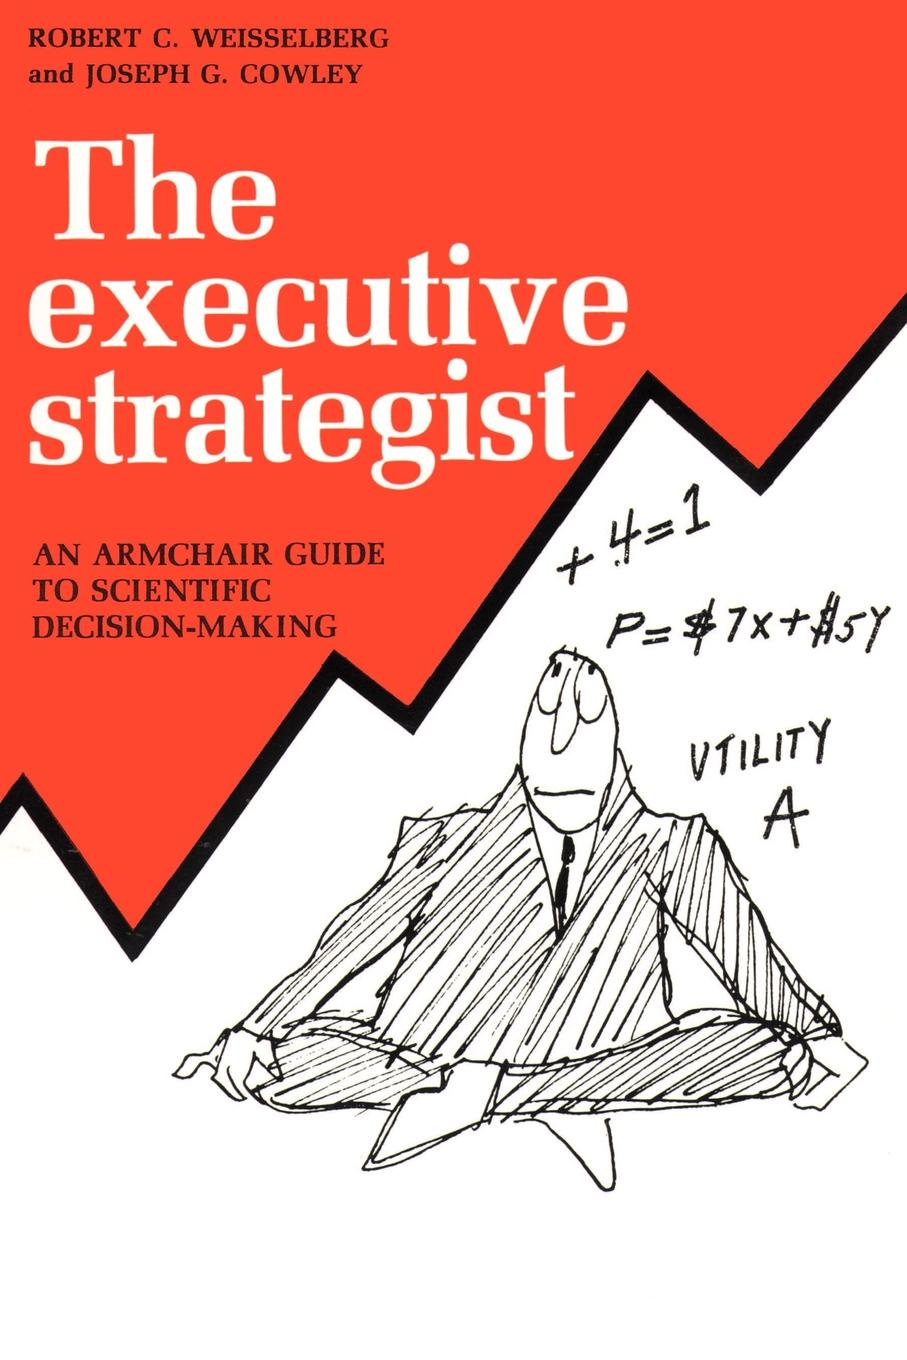 Robert C. Weisselberg, Joseph G. Cowley The Executive Strategist. An Armchair Guide to Scientific Decision-Making benedict nnolim perspectives from an armchair